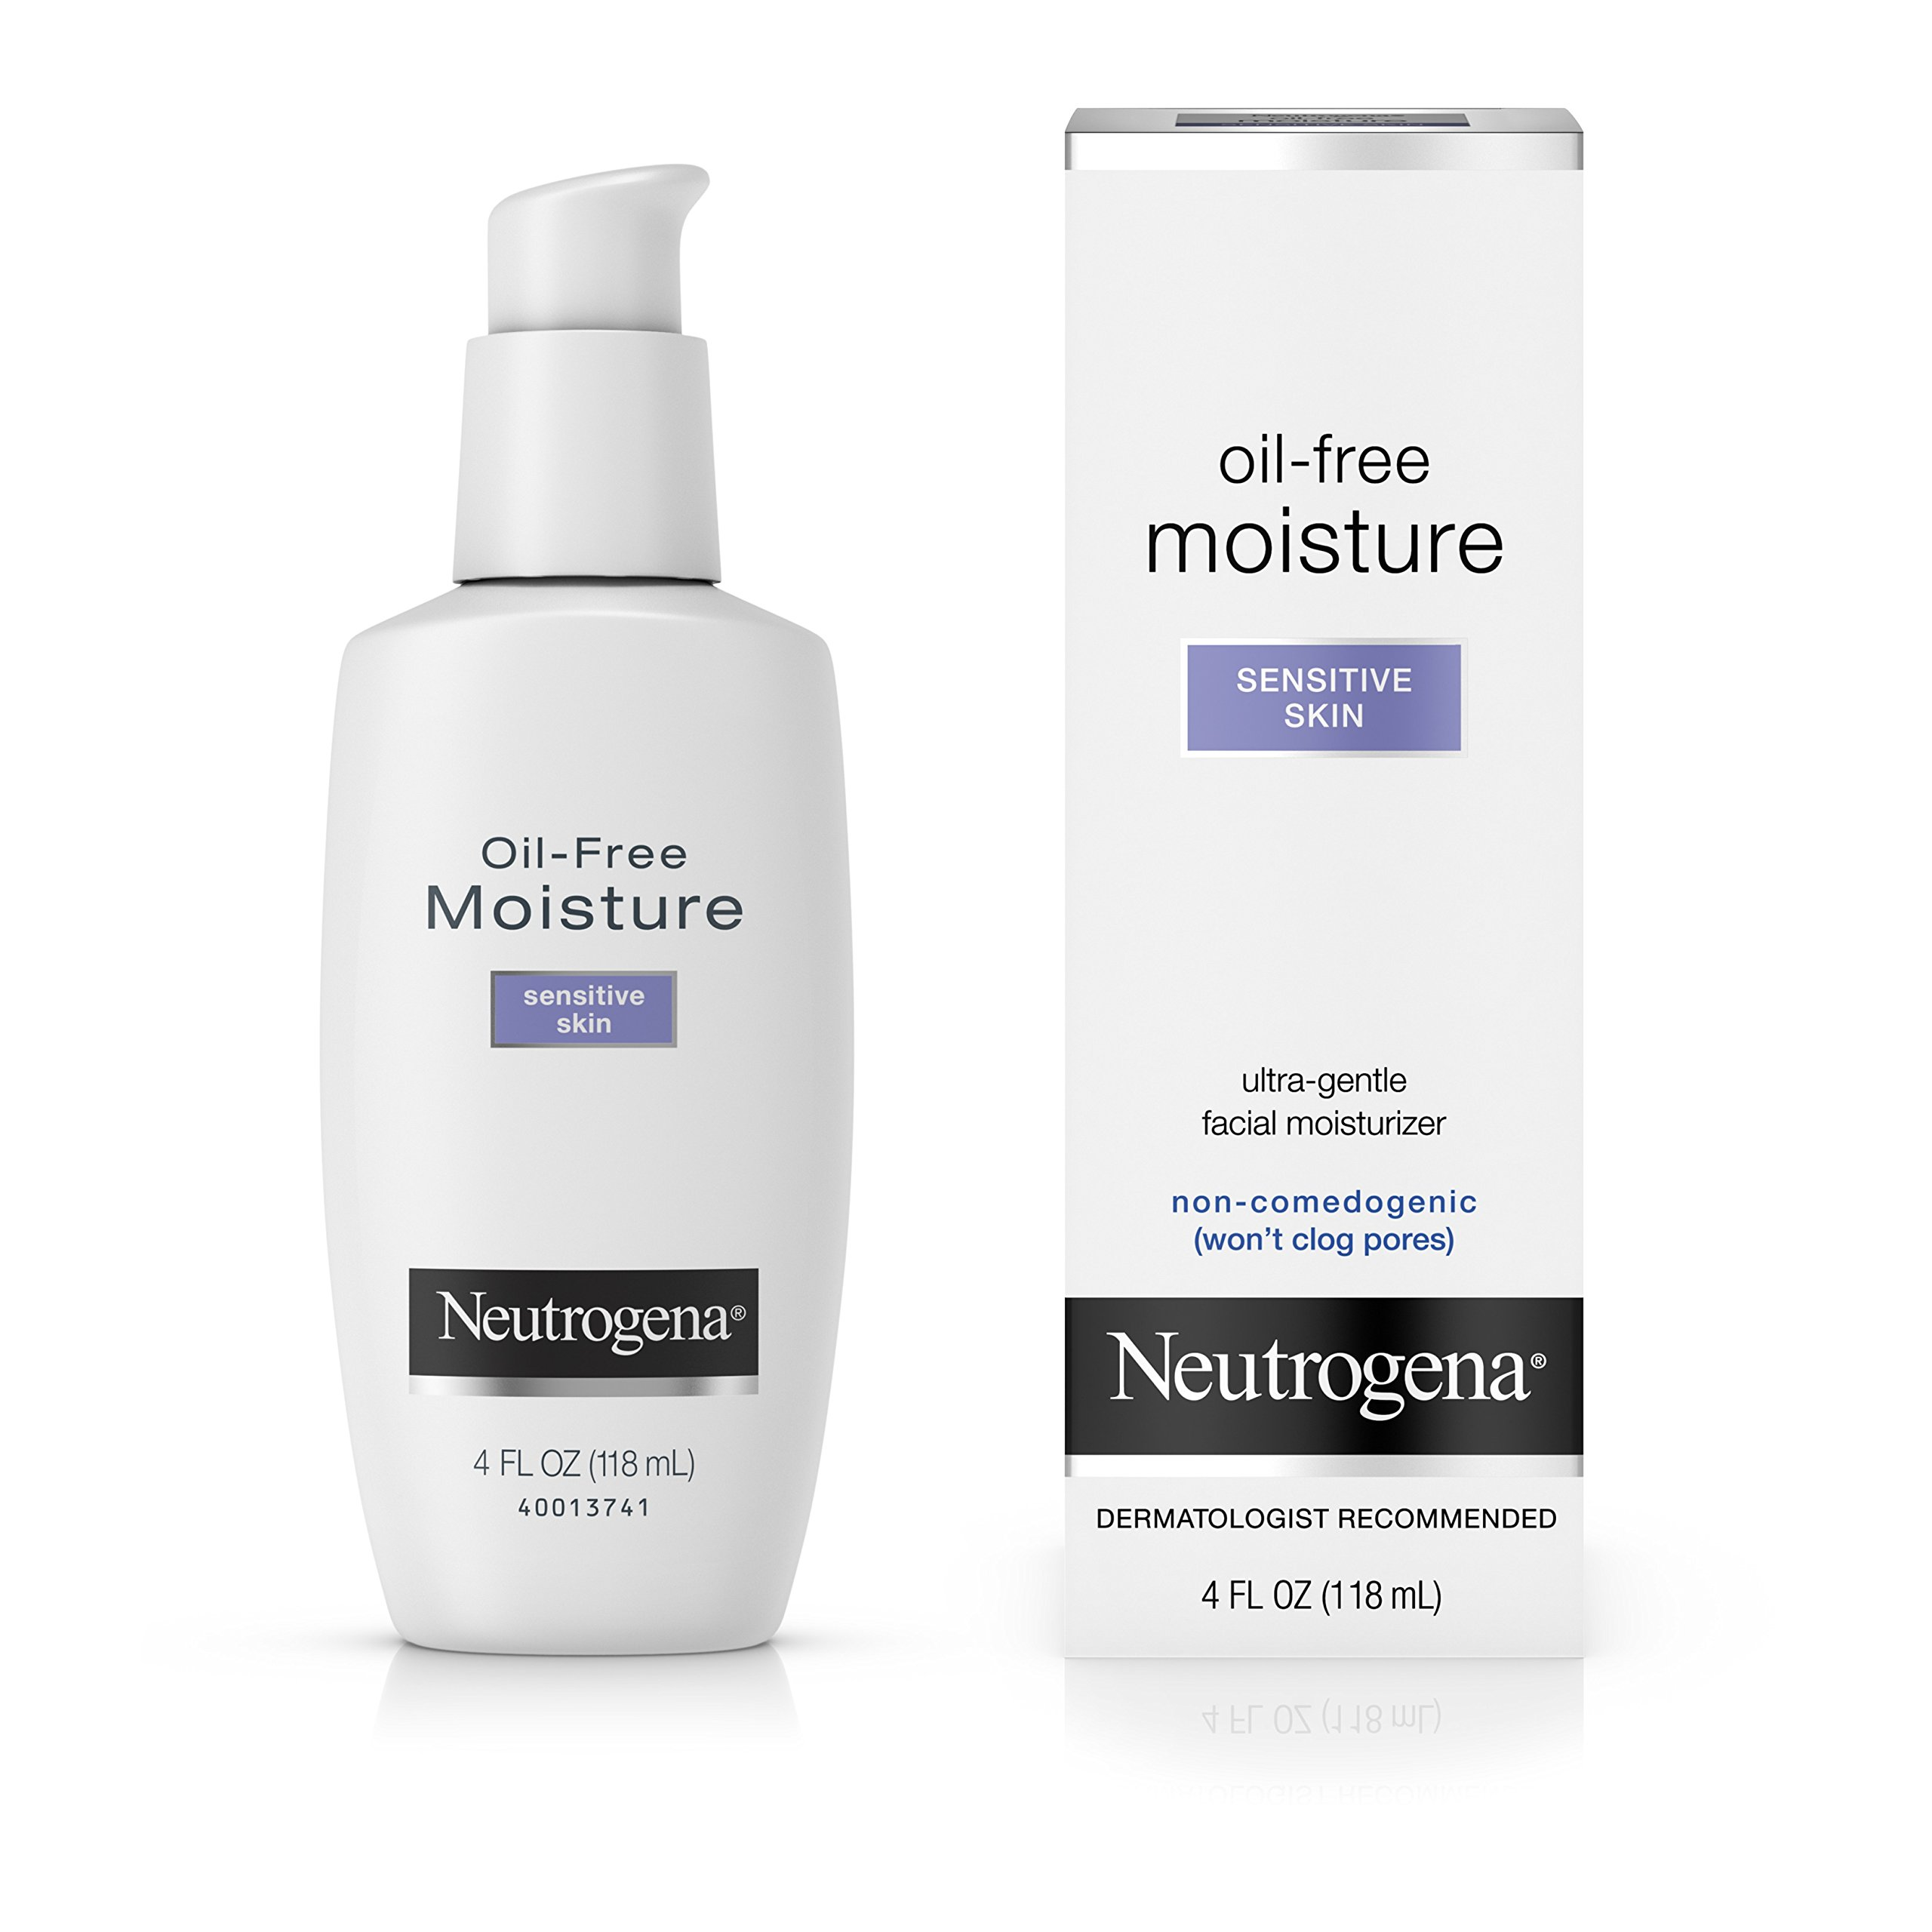 Neutrogena Oil Free Moisture Daily Hydrating Facial Moisturizer & Neck Cream with Glycerin - Fast Absorbing Ultra Gentle Lightweight Face Lotion & Sensitive Skin Face Moisturizer, 4 fl. oz